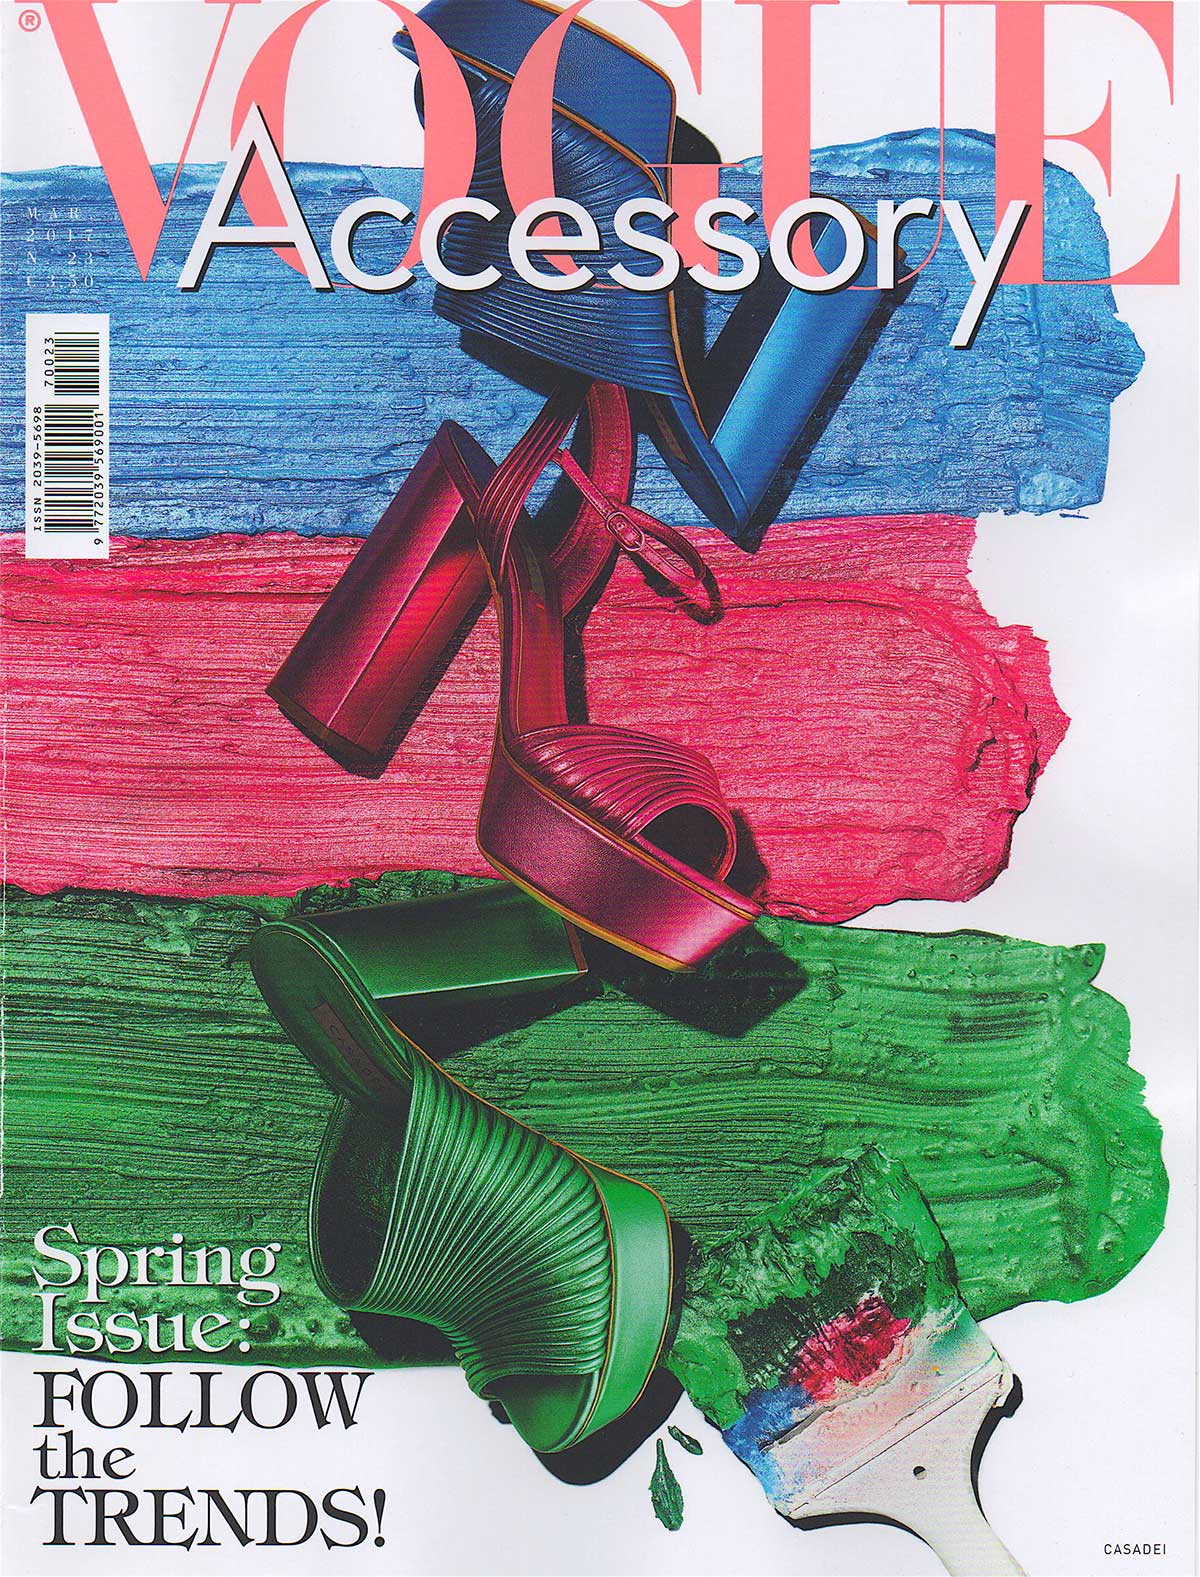 Vogue Accessory marzo 2017